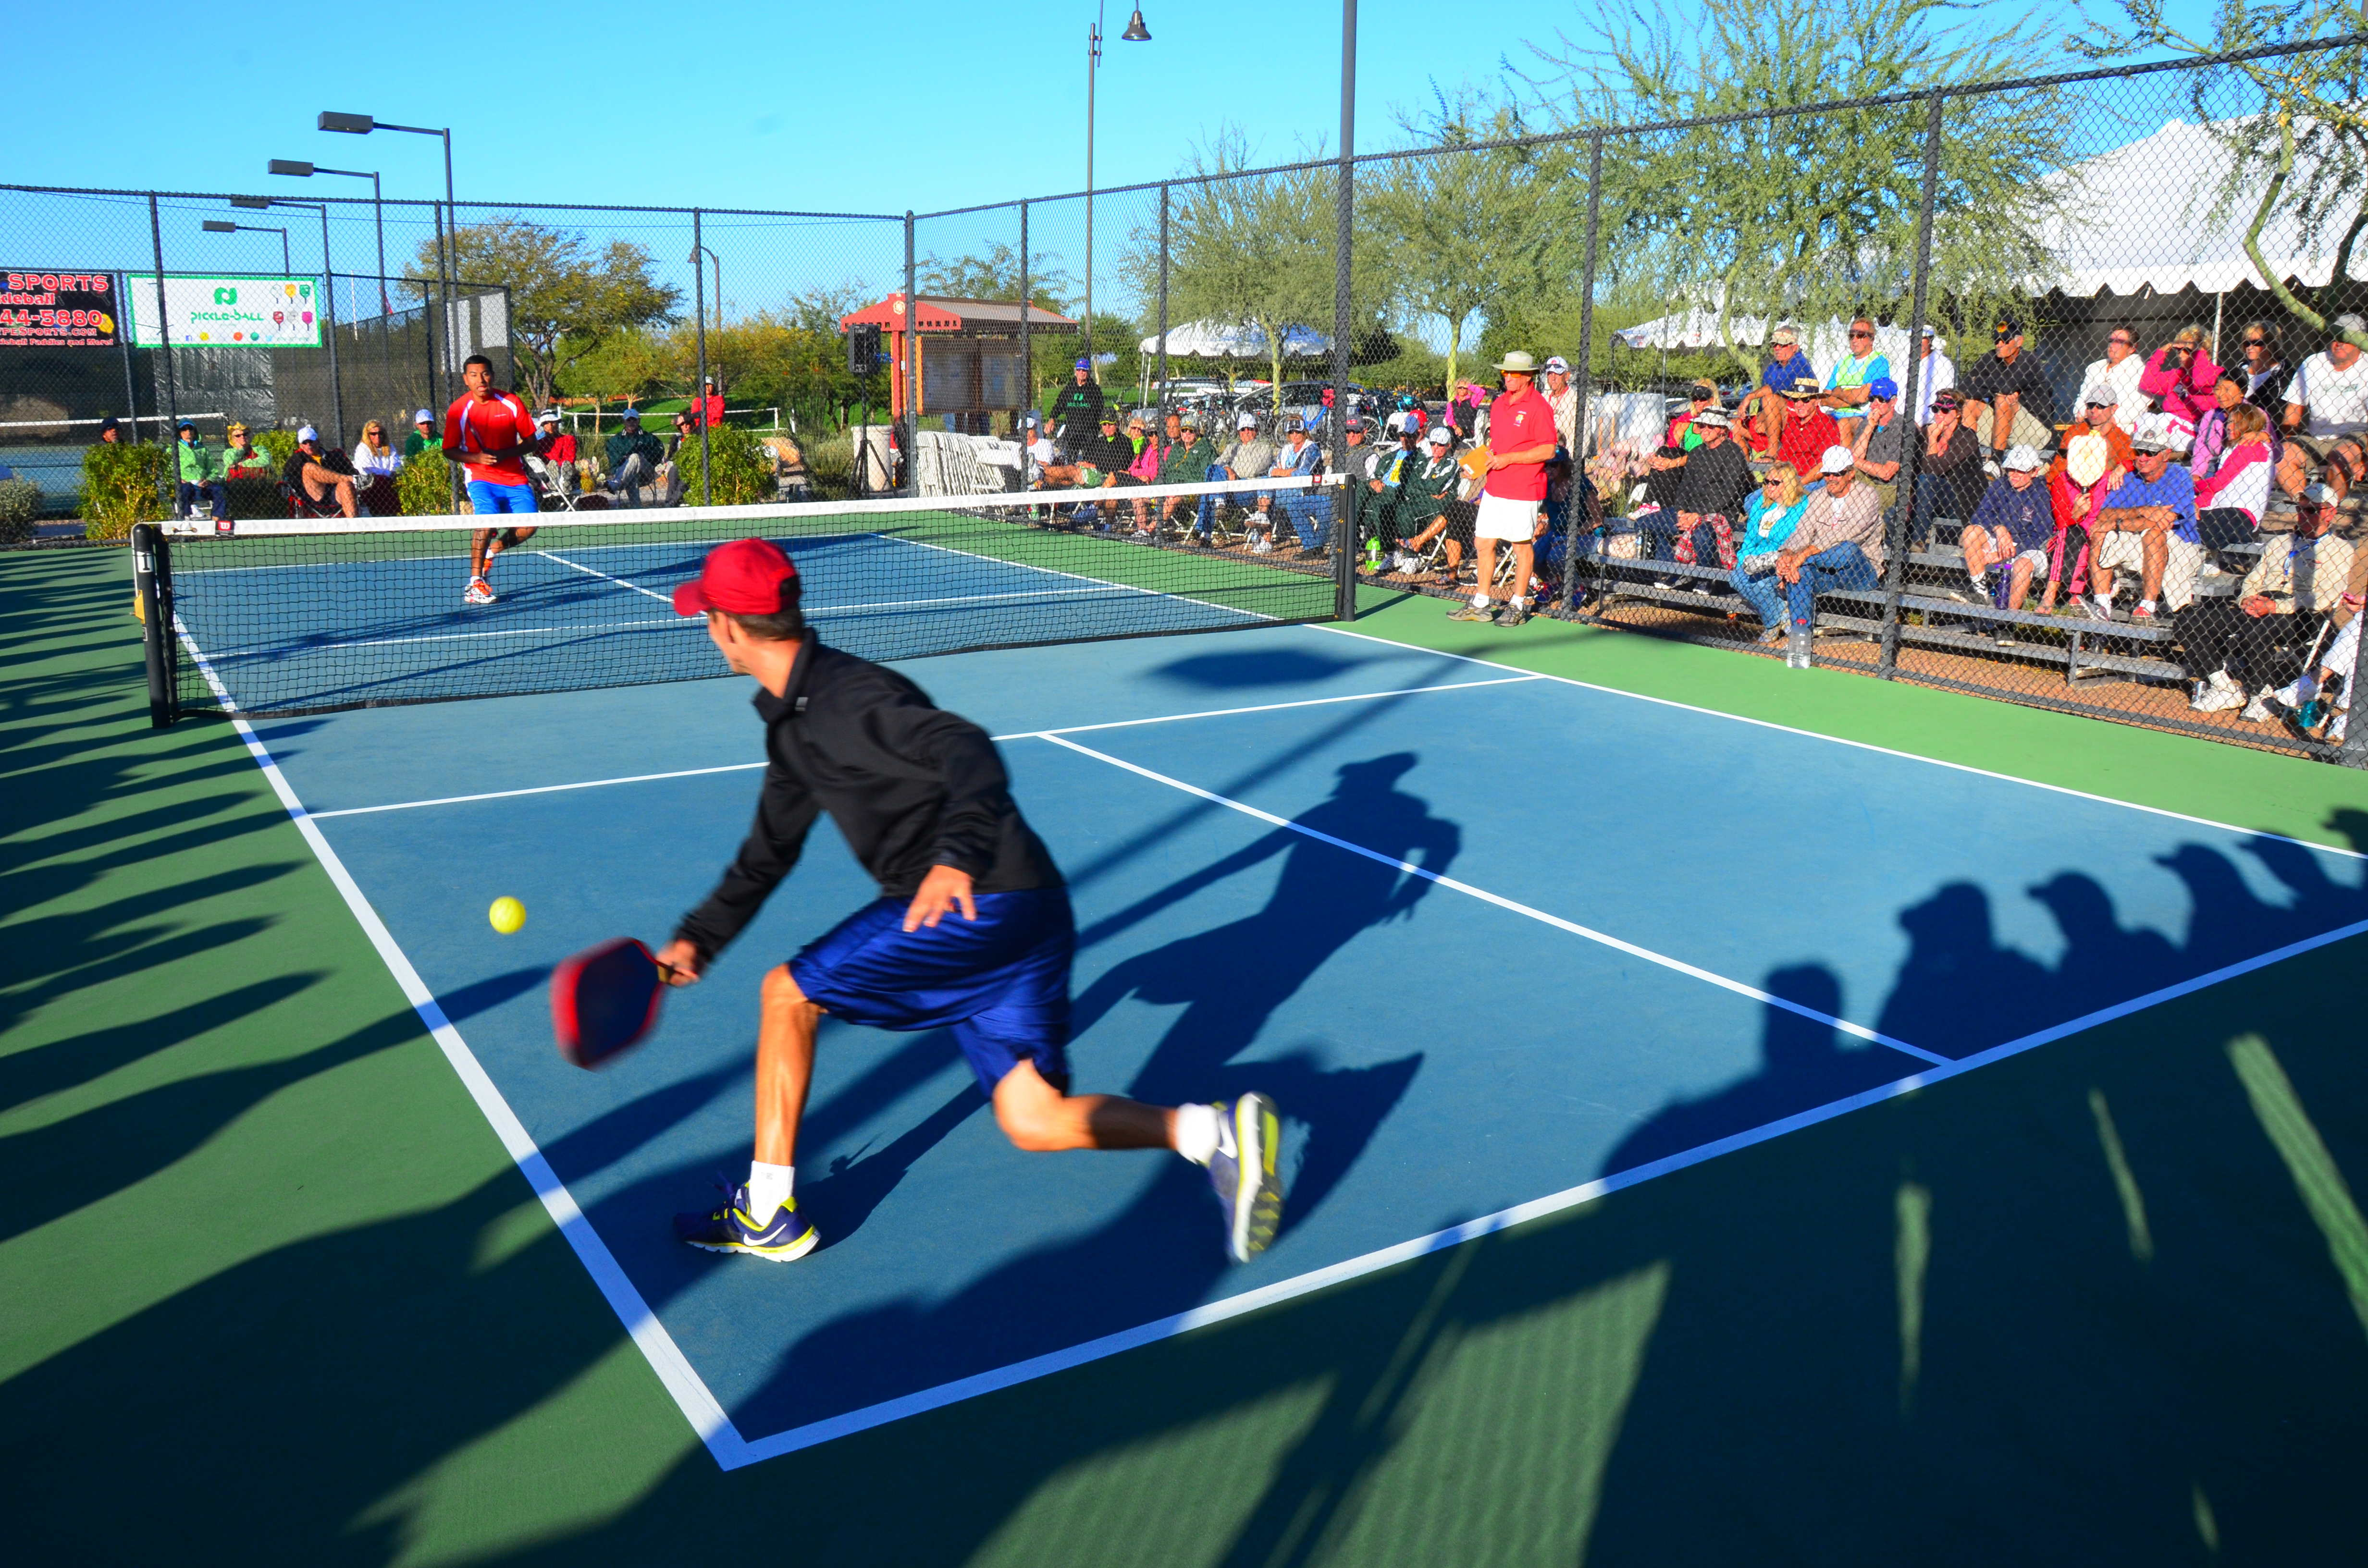 Indoor pickleball adult program i tennis with koa sports for Sport court cost per square foot